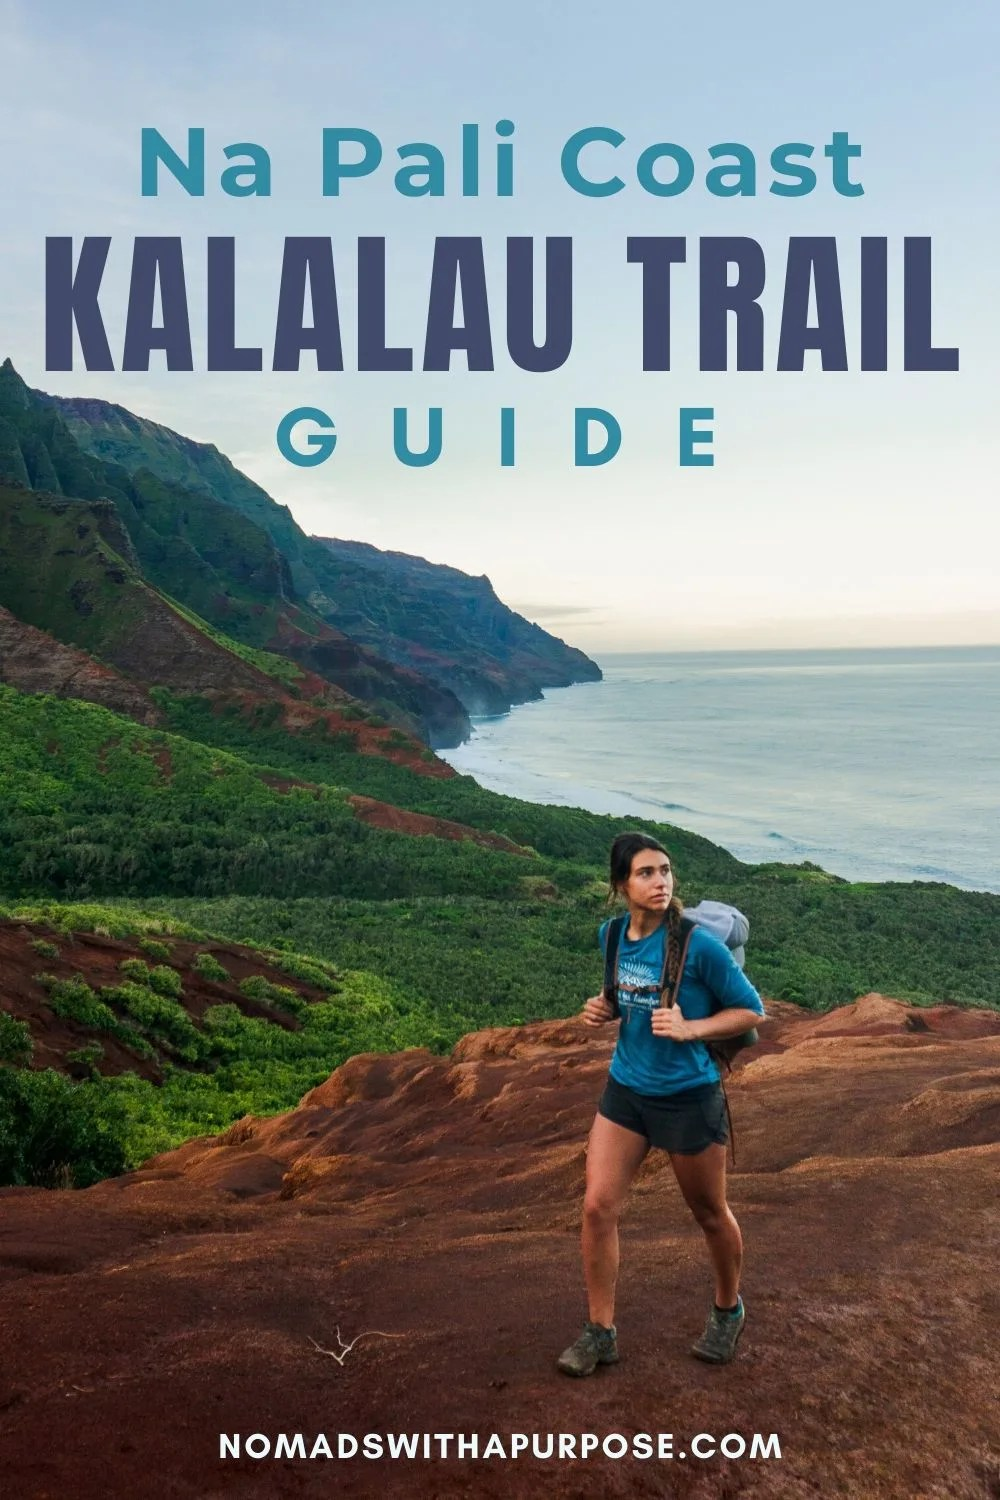 kalalau trail: Hiking the Na Pali Coast